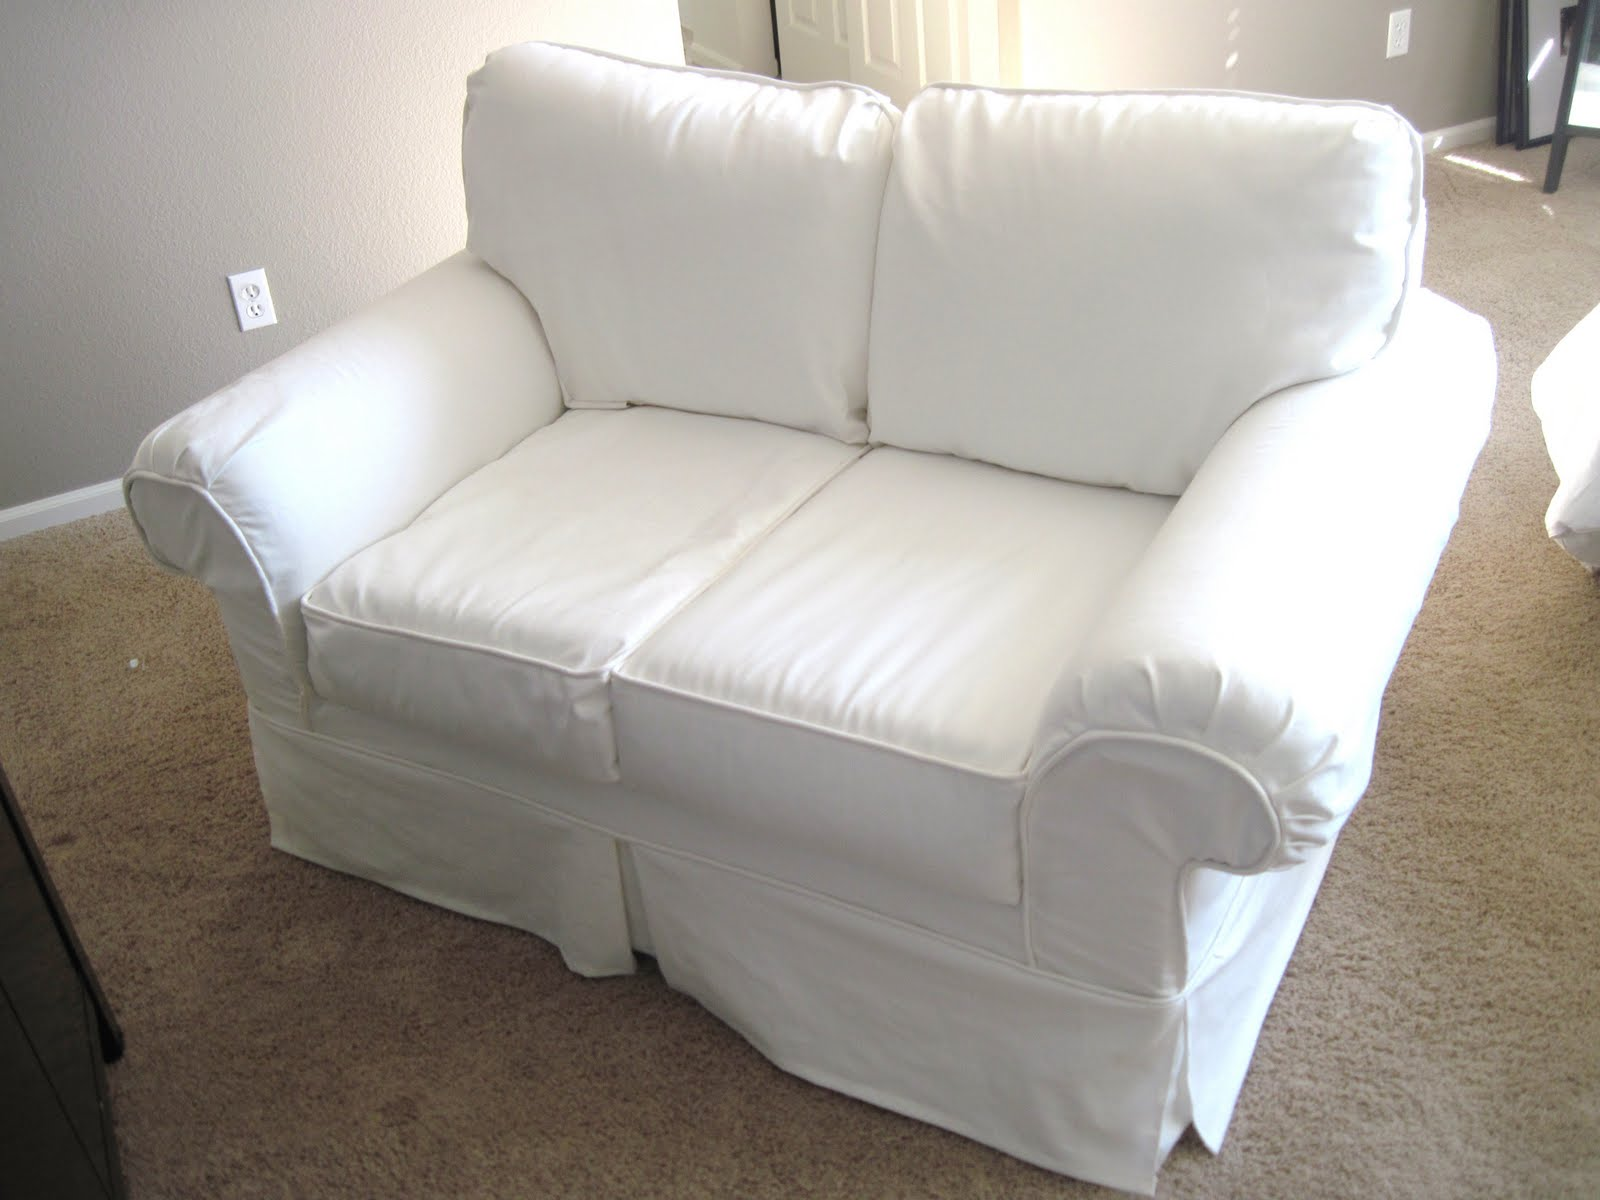 How To Make Chair Covers For Kitchen Chairs